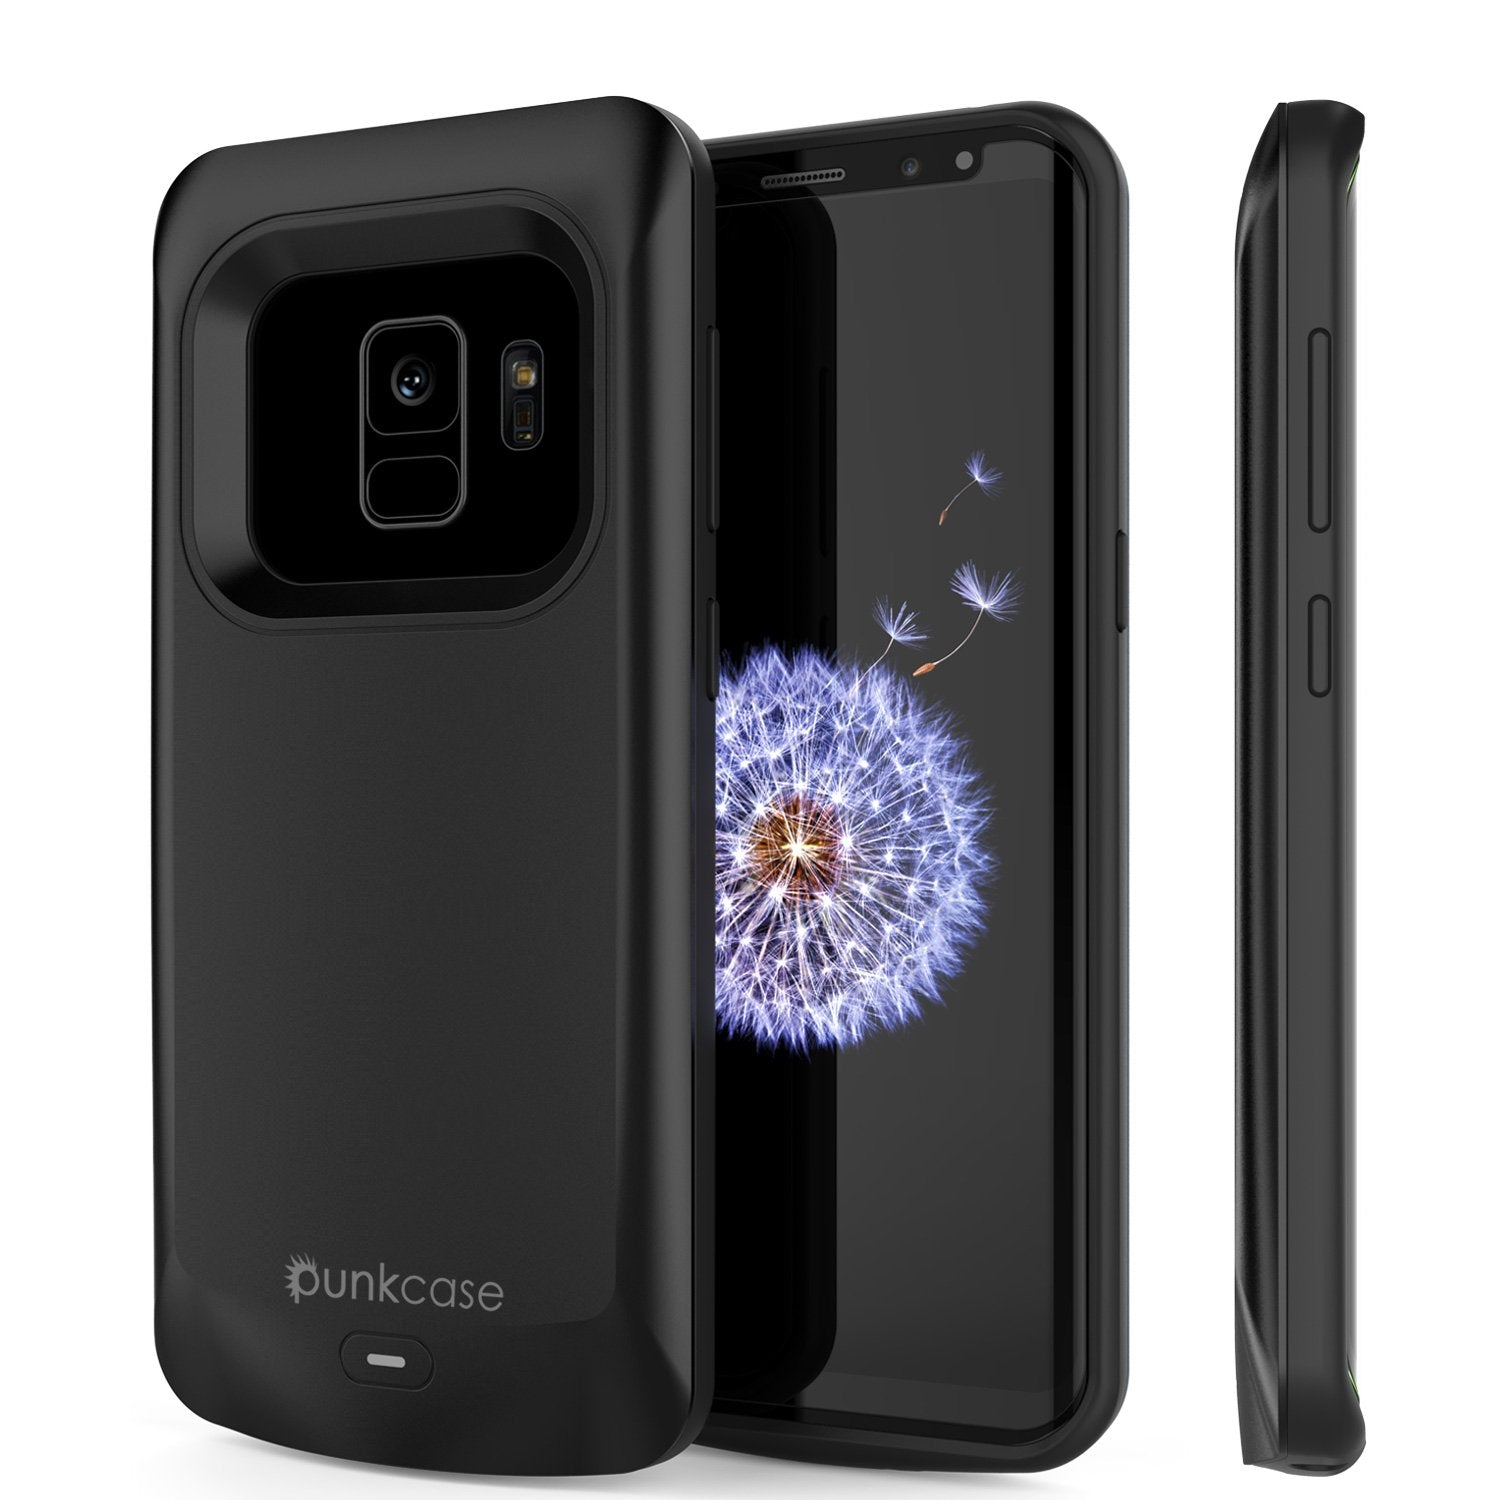 Galaxy S9 Case, PunkJuice 5000mAH Fast Charging Power Bank[Black]